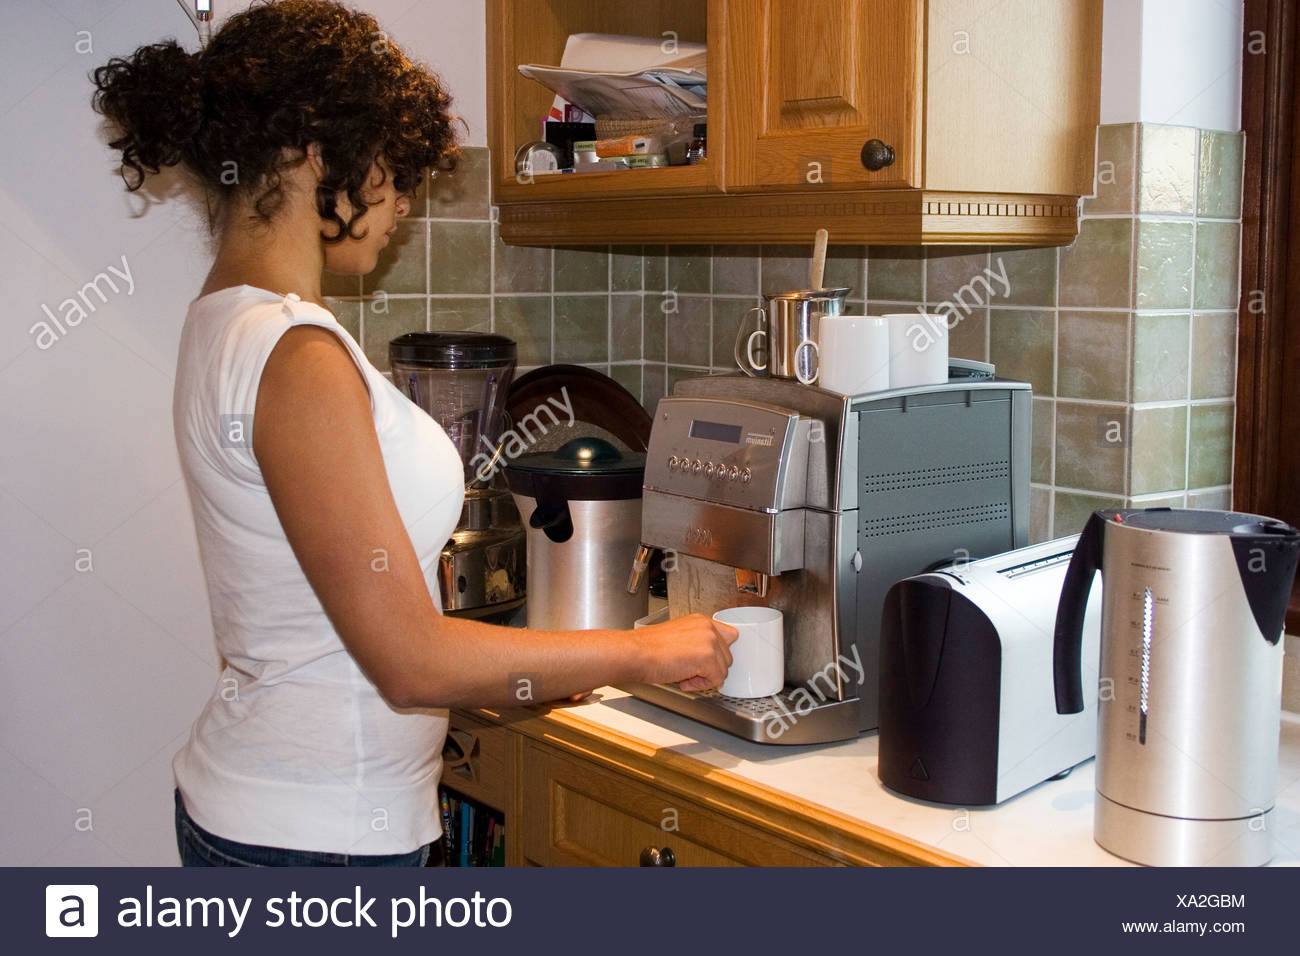 Espresso Recklinghausen electrical devices and appliances stock photos electrical devices